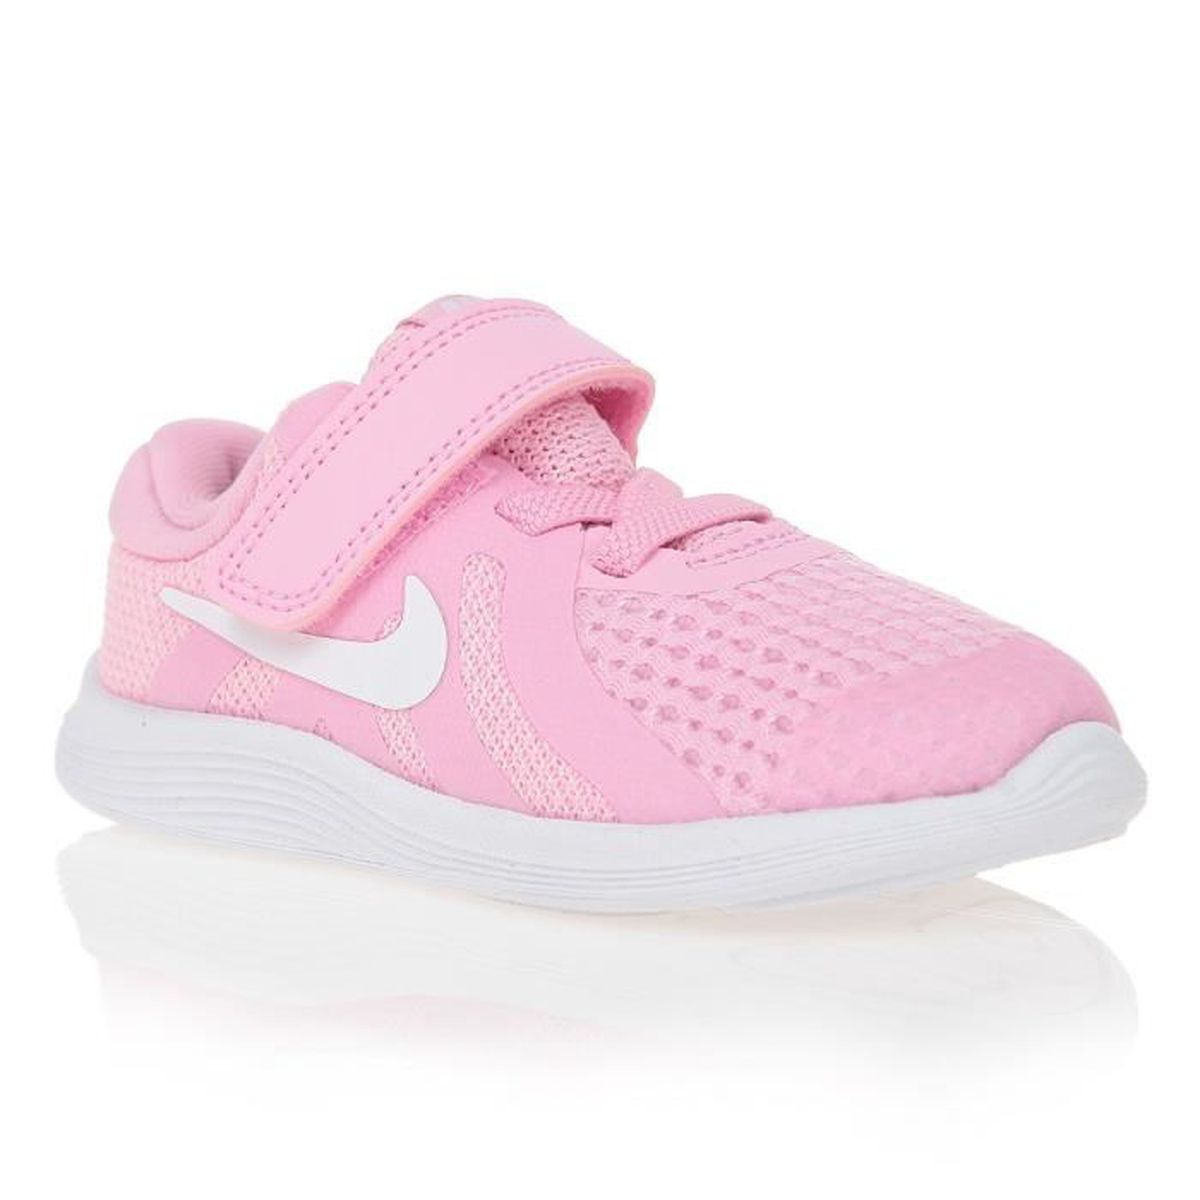 free shipping dc0fa f7ecf Nike bebe fille - Achat   Vente pas cher